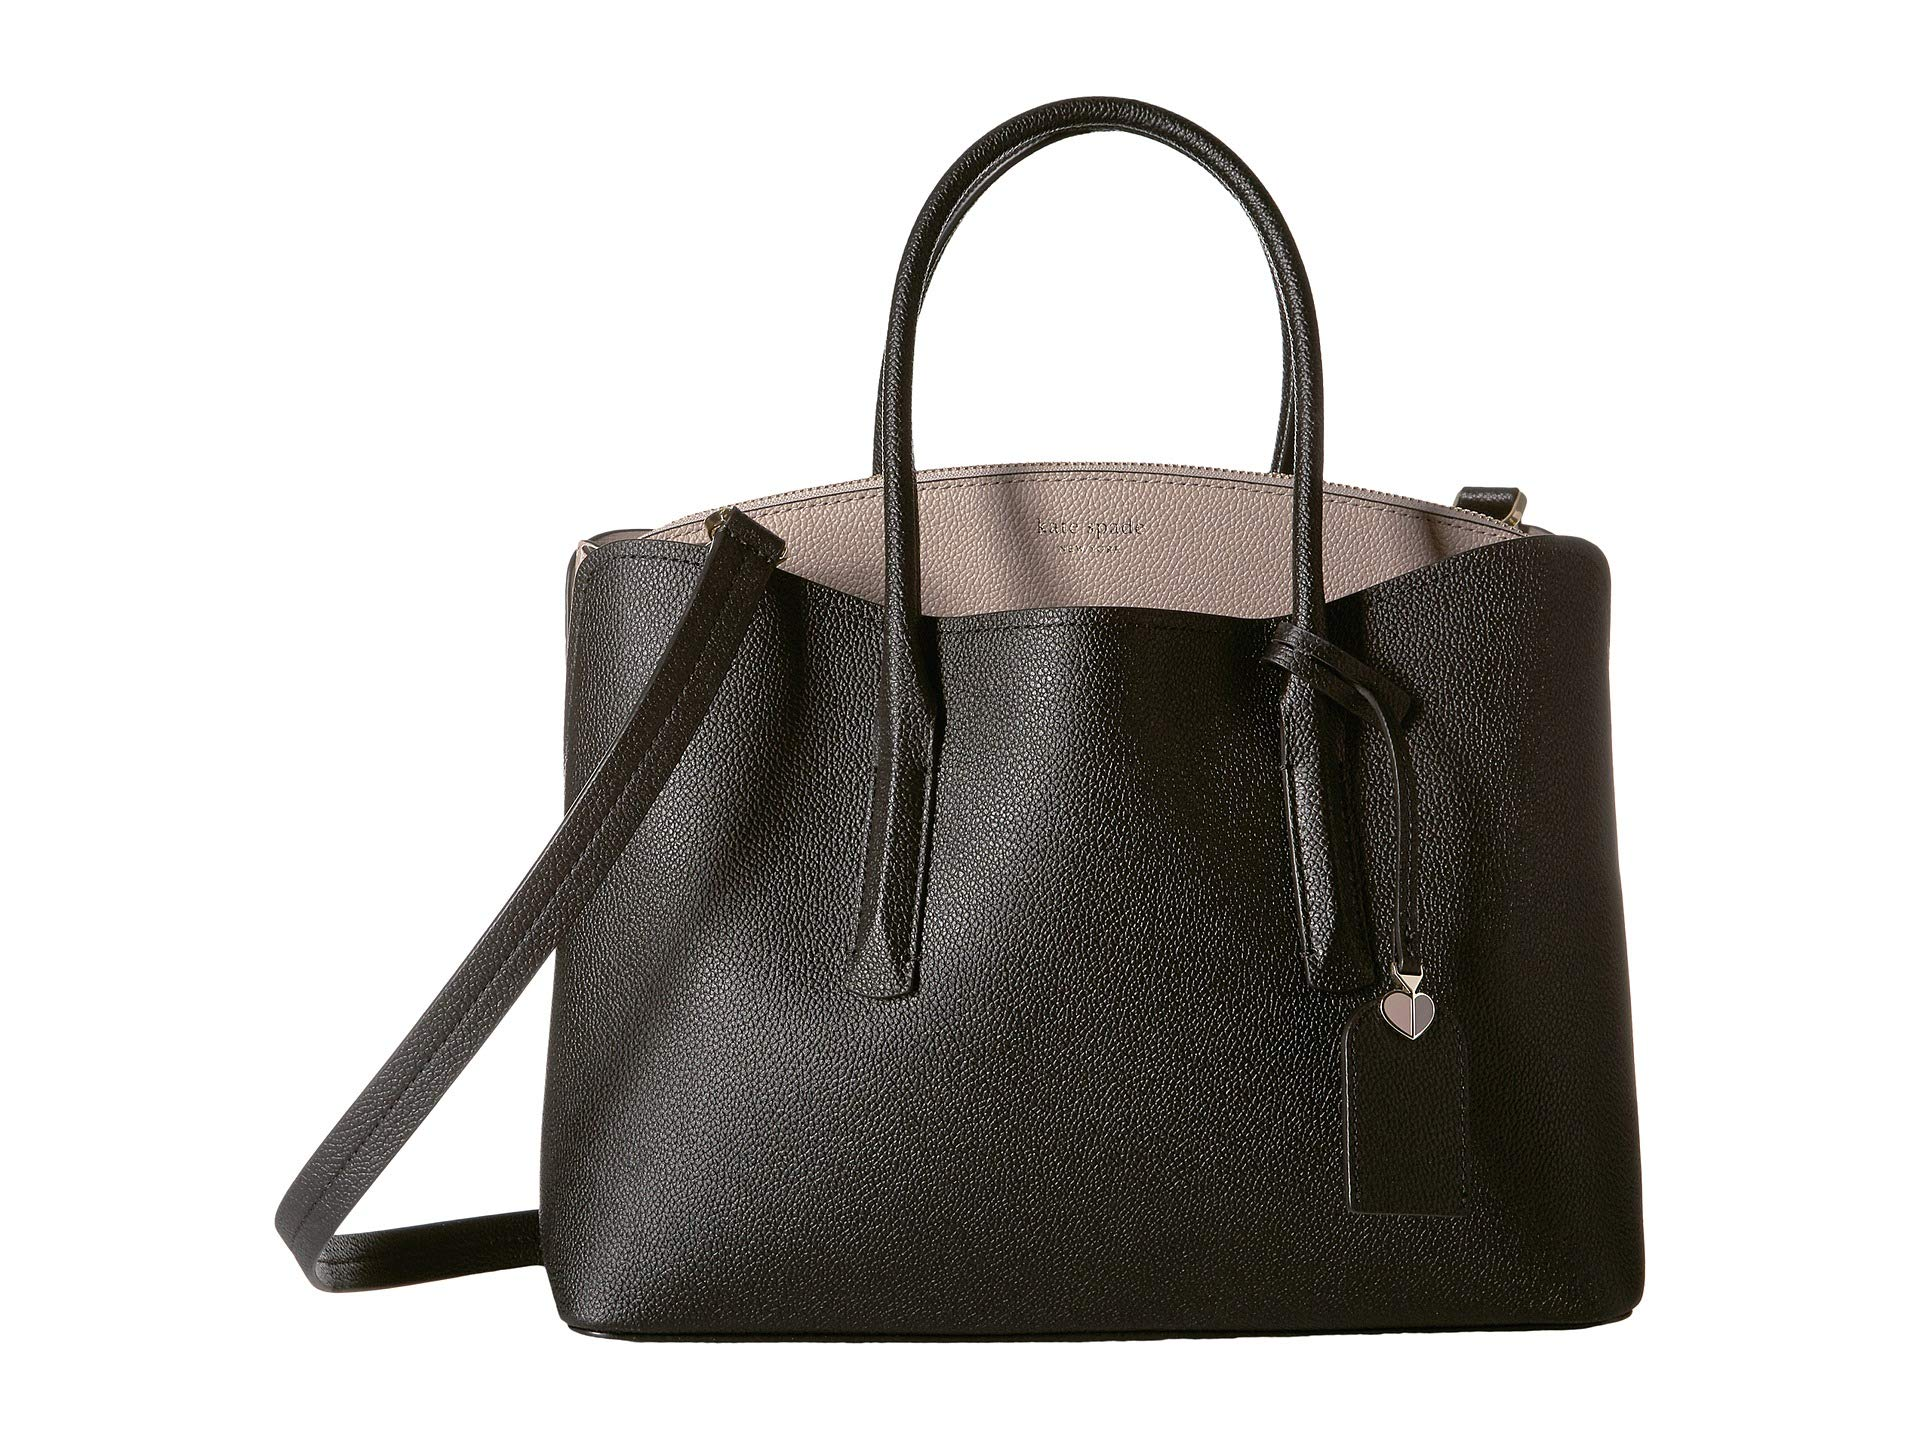 9ea51492fc4f Kate Spade New York Margaux Large Satchel at Luxury.Zappos.com